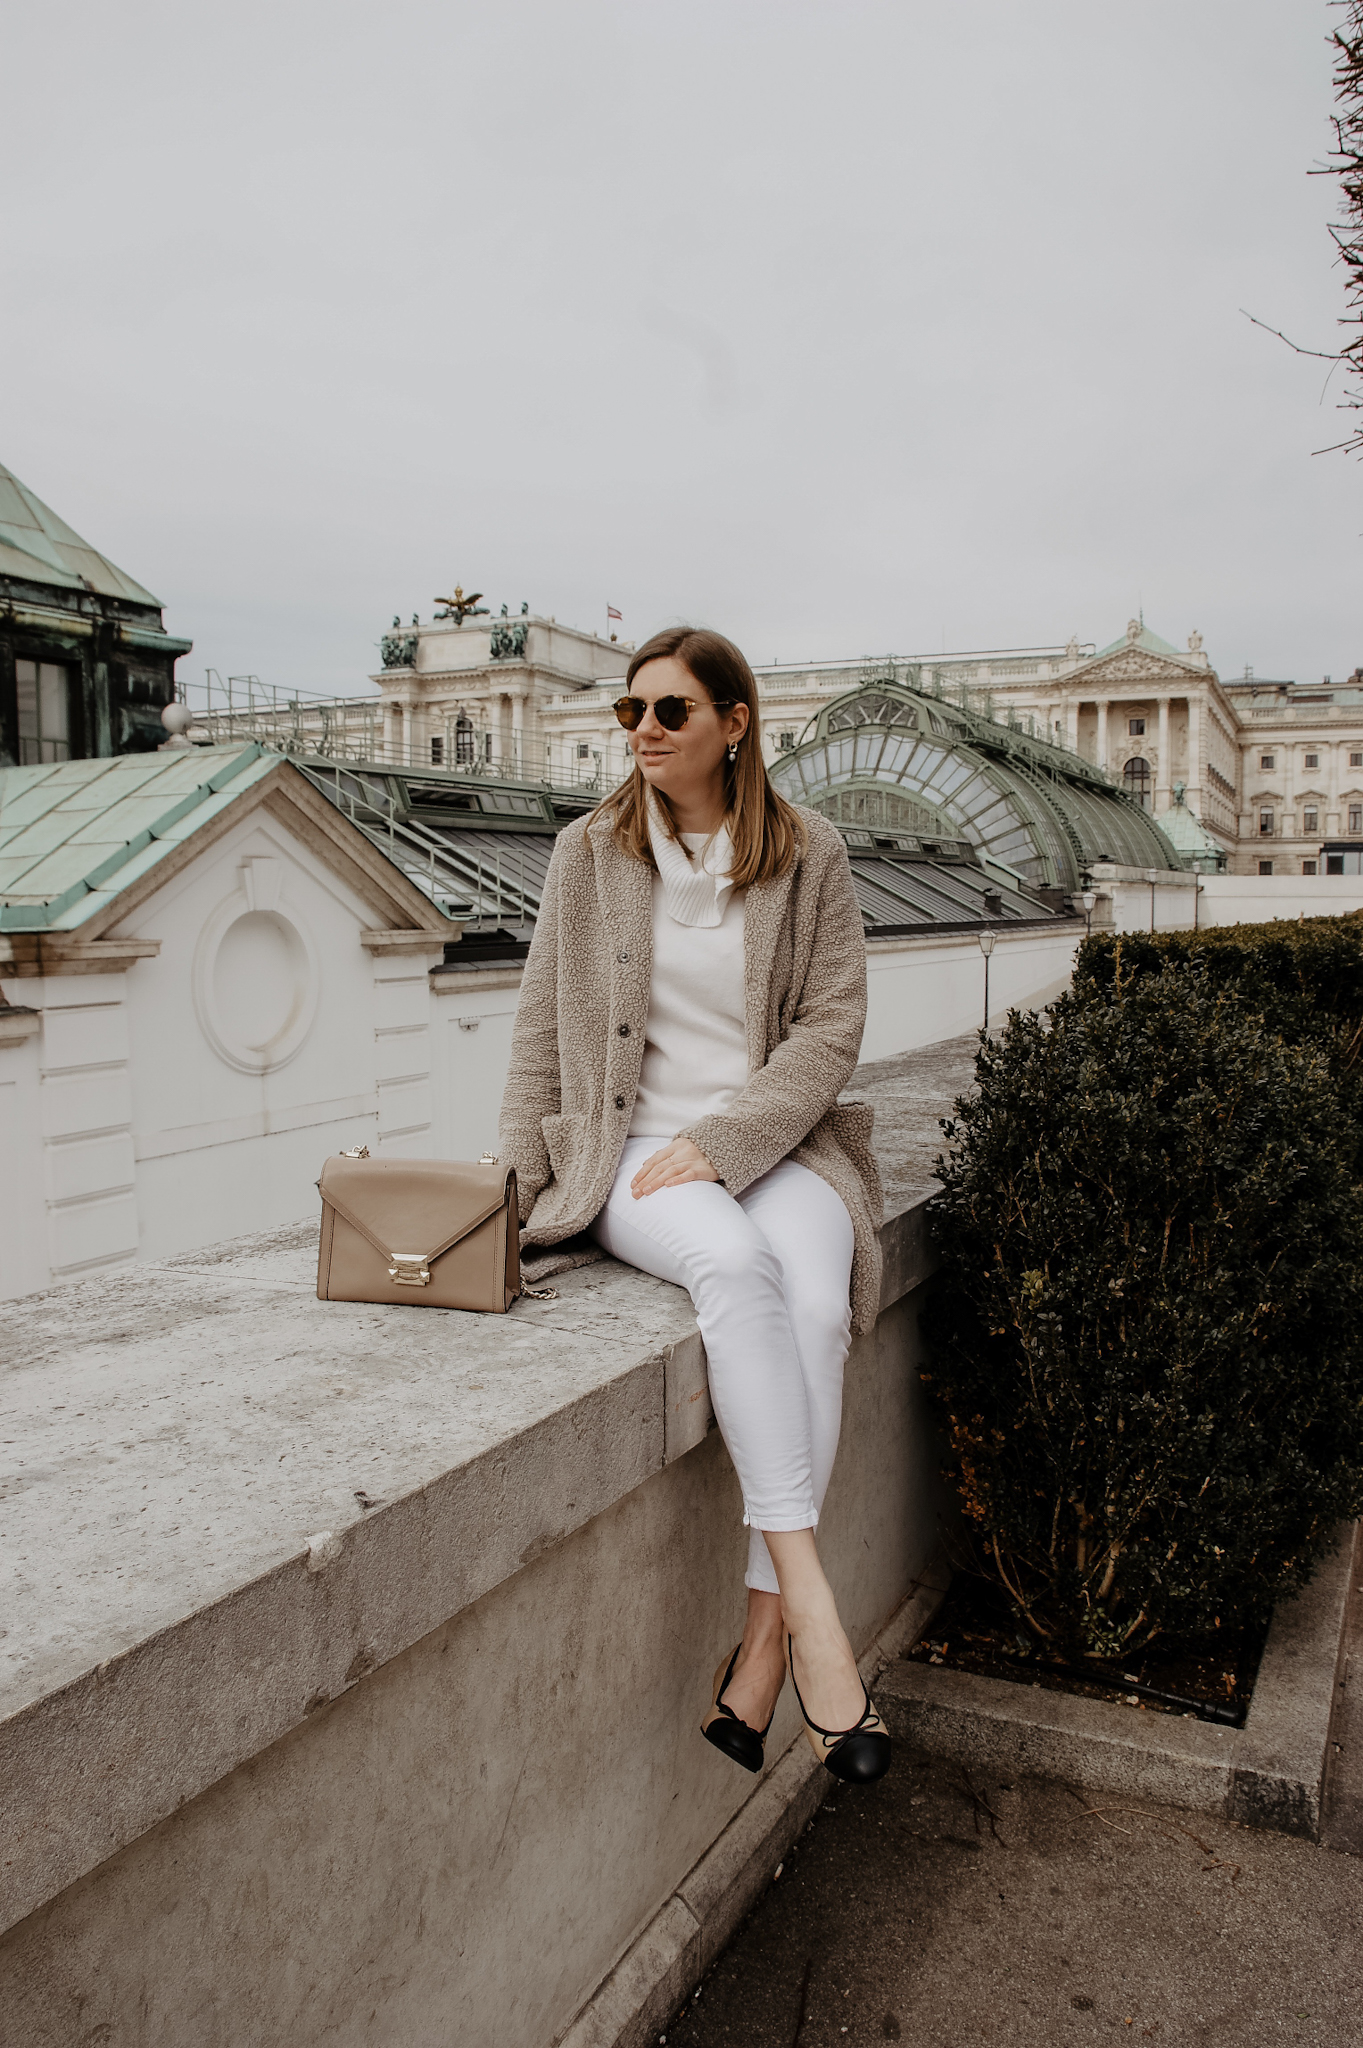 Teddycoat, Vienna, spring outfit